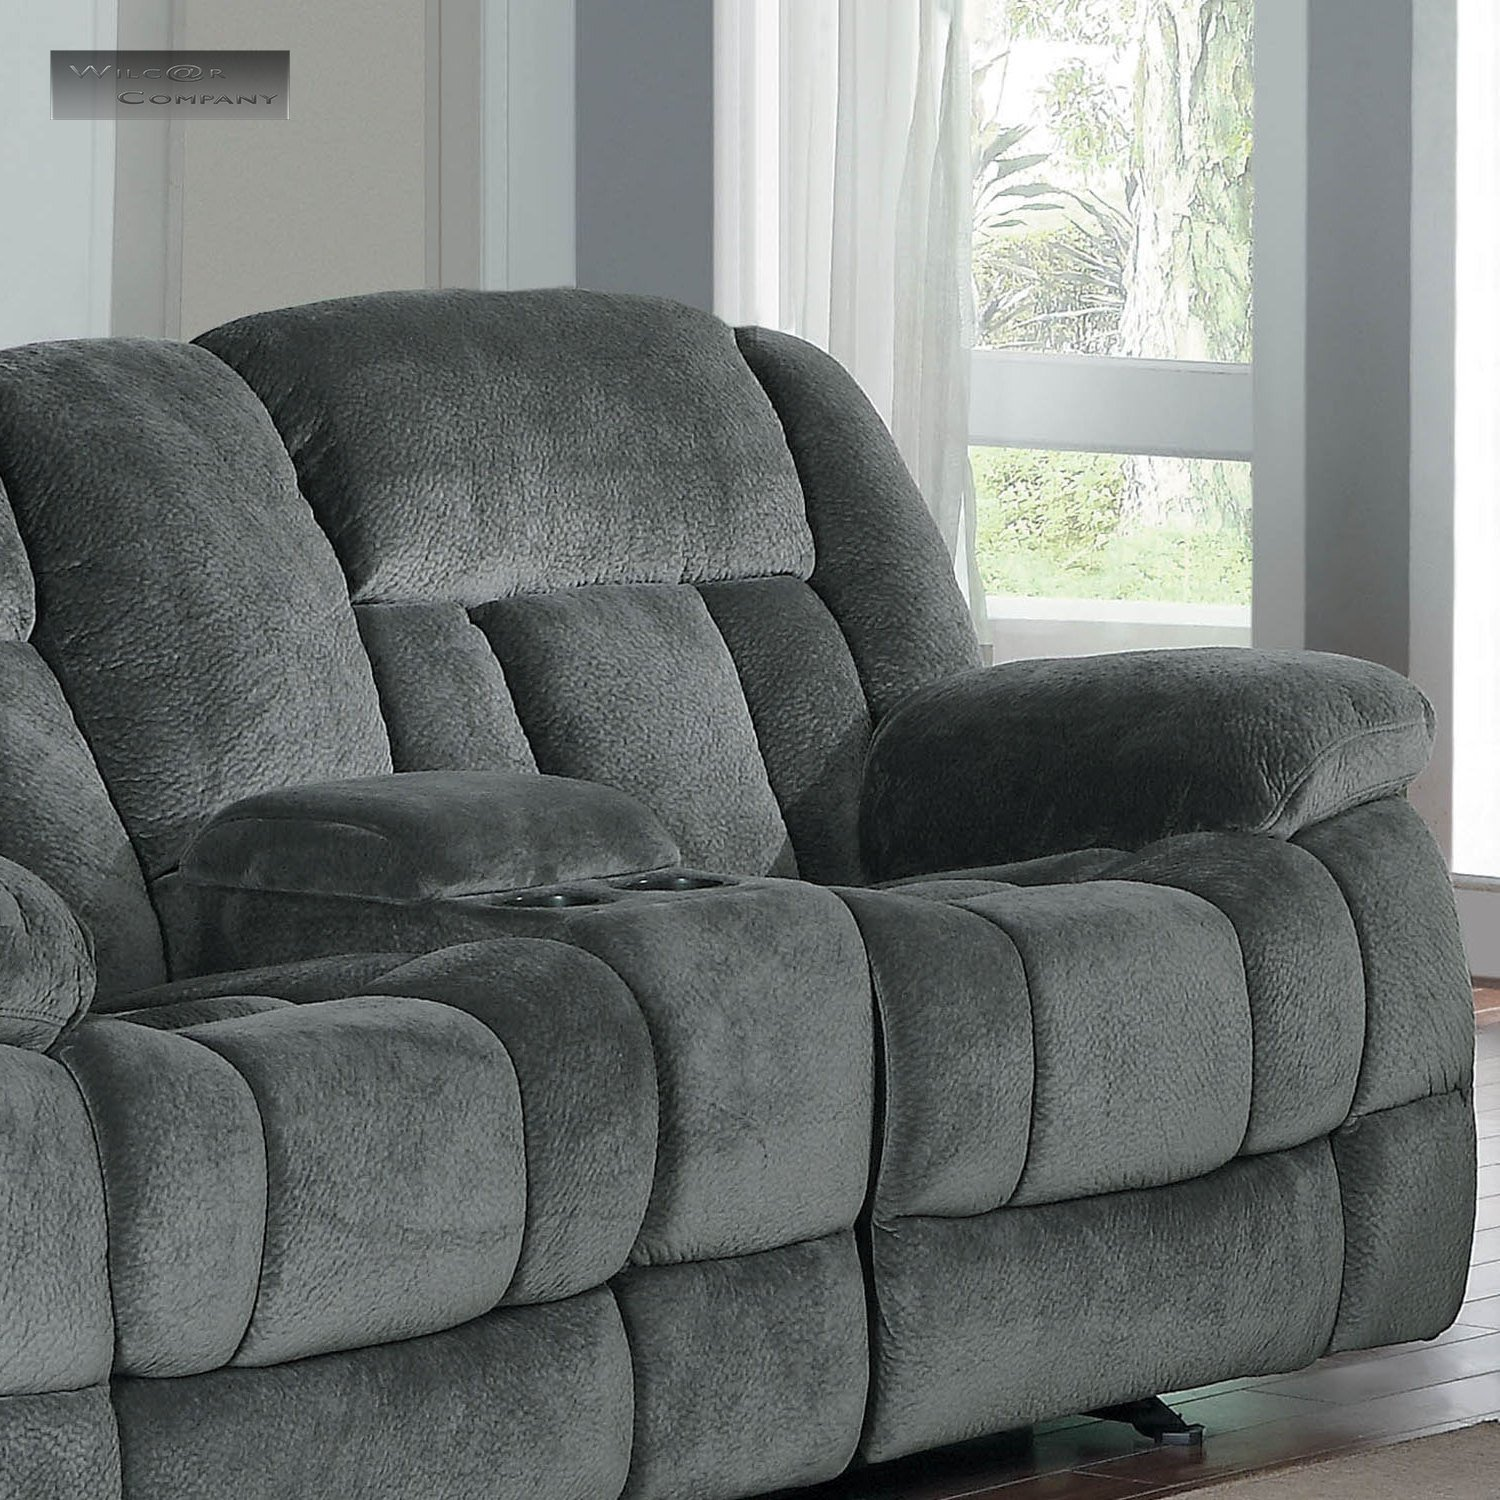 New Grey Rocker Glider Double Recliner Loveseat Lazy Sofa Rocking Reclining Boy Ebay